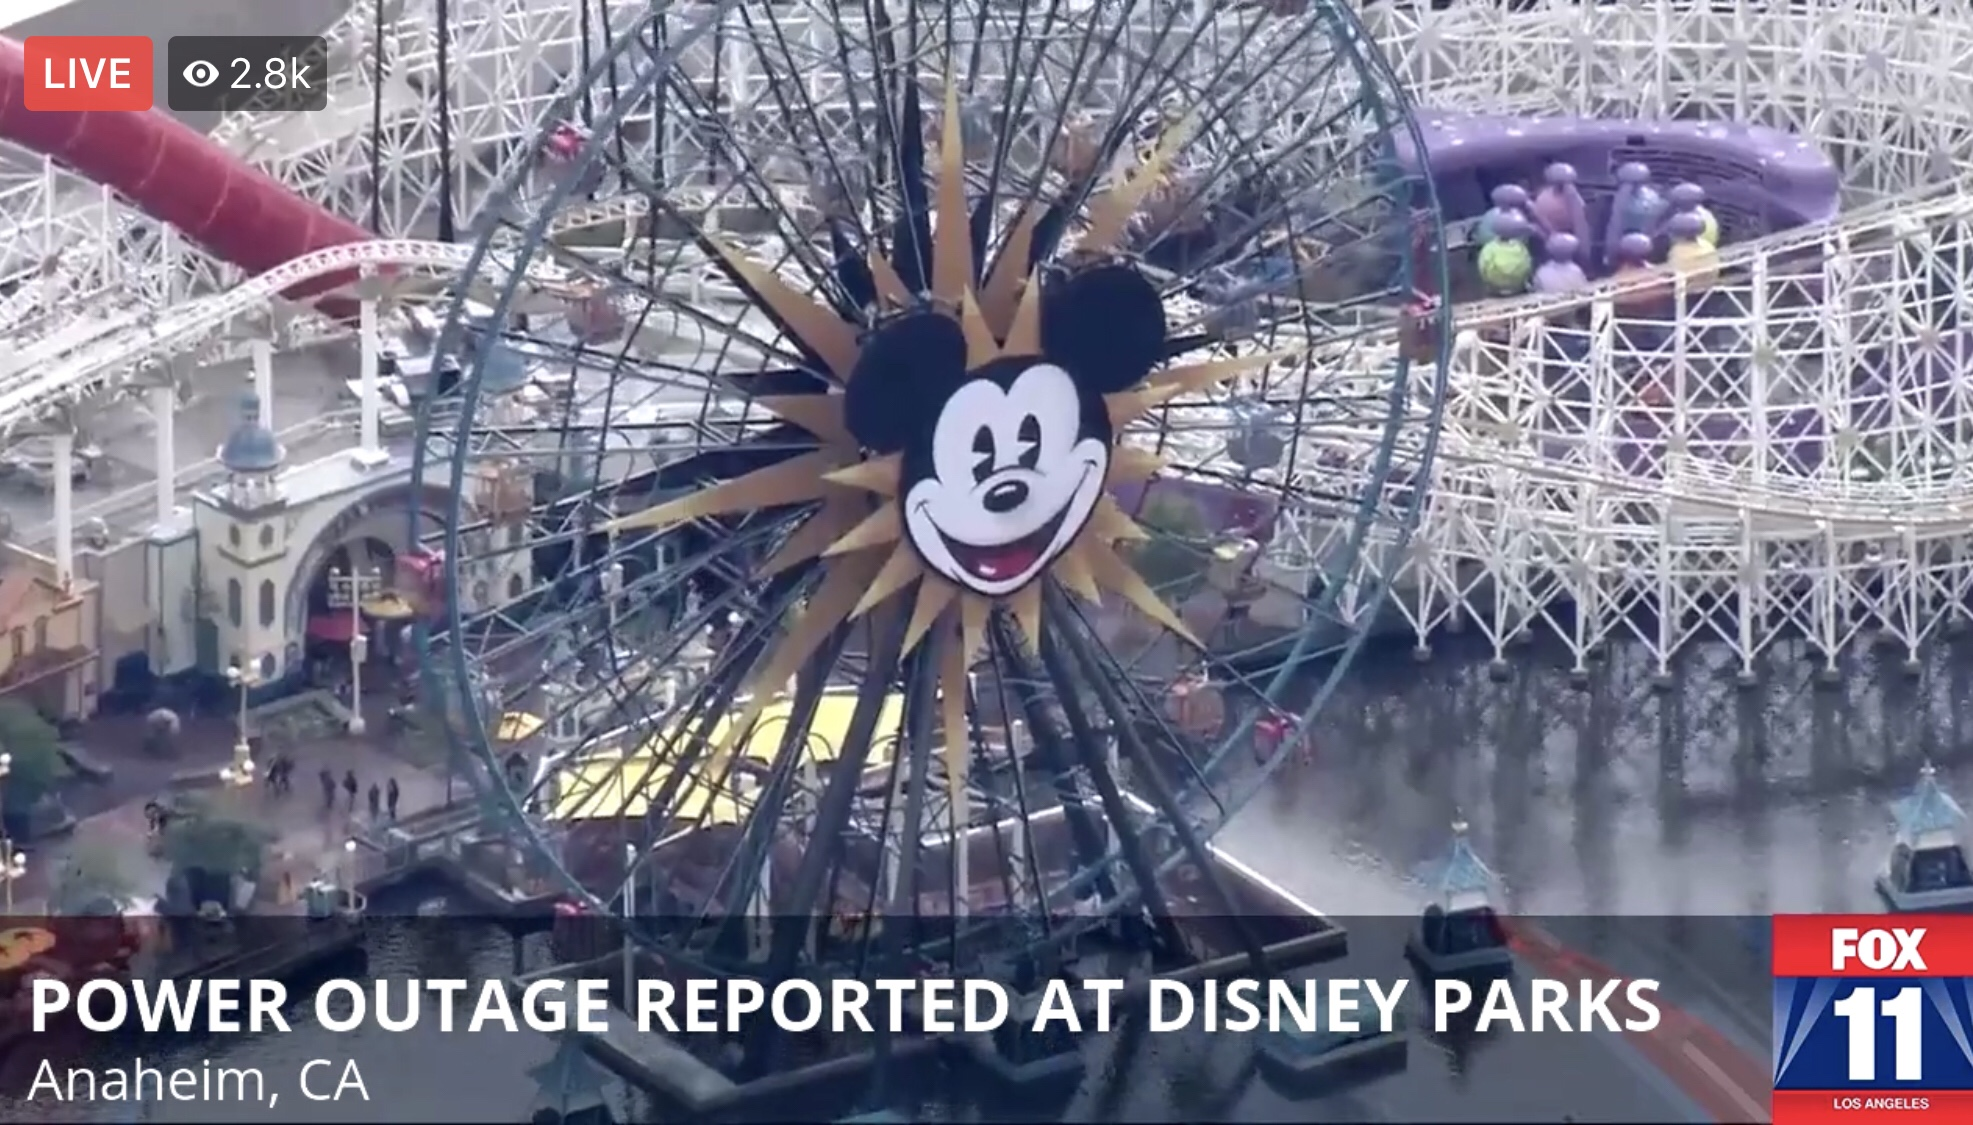 Power Outage Reported at Disneyland Resort